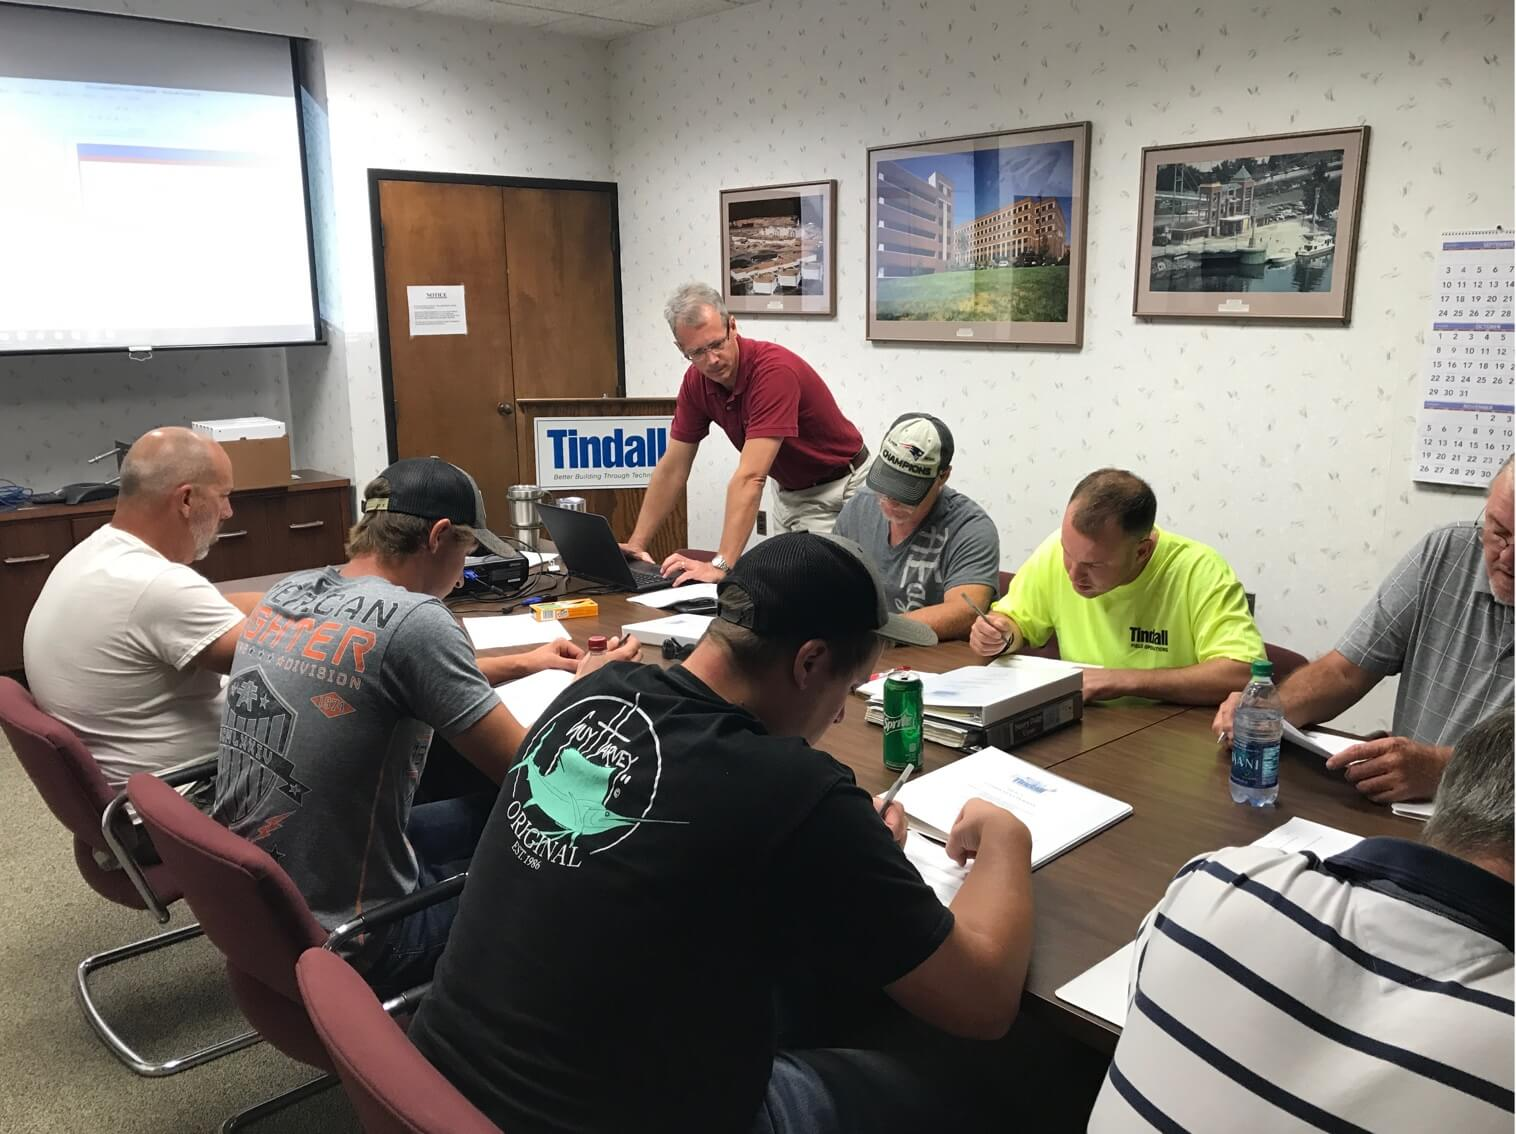 Tindall Precast Safety Meeting